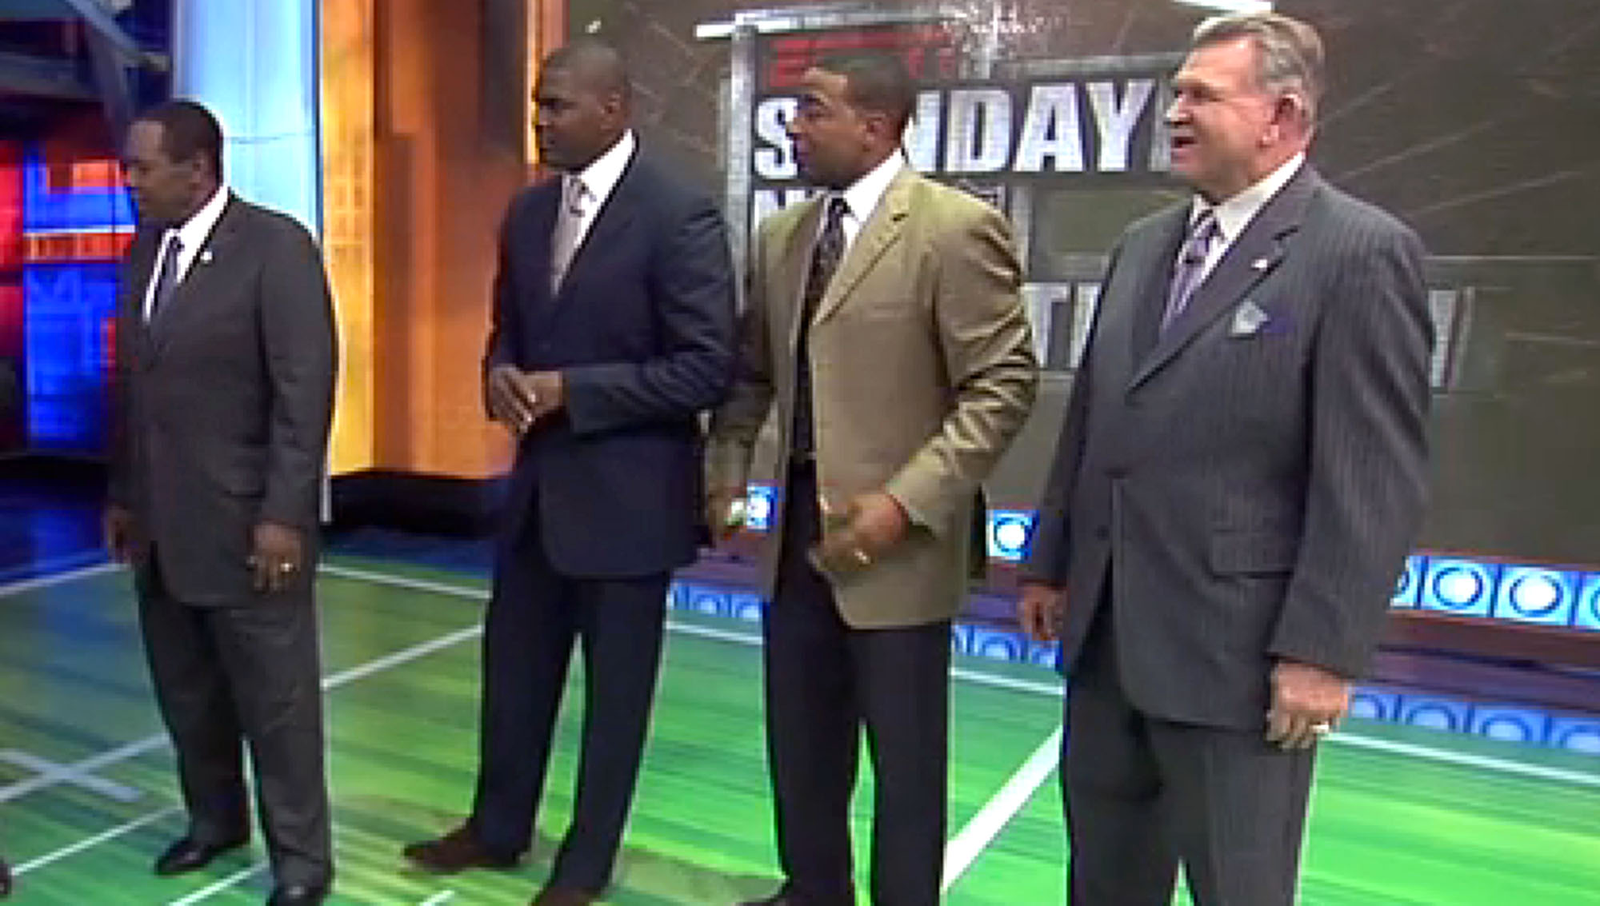 'Sunday NFL Countdown' Crew Gives Some Dumb Fucking Demonstration On Fake Field